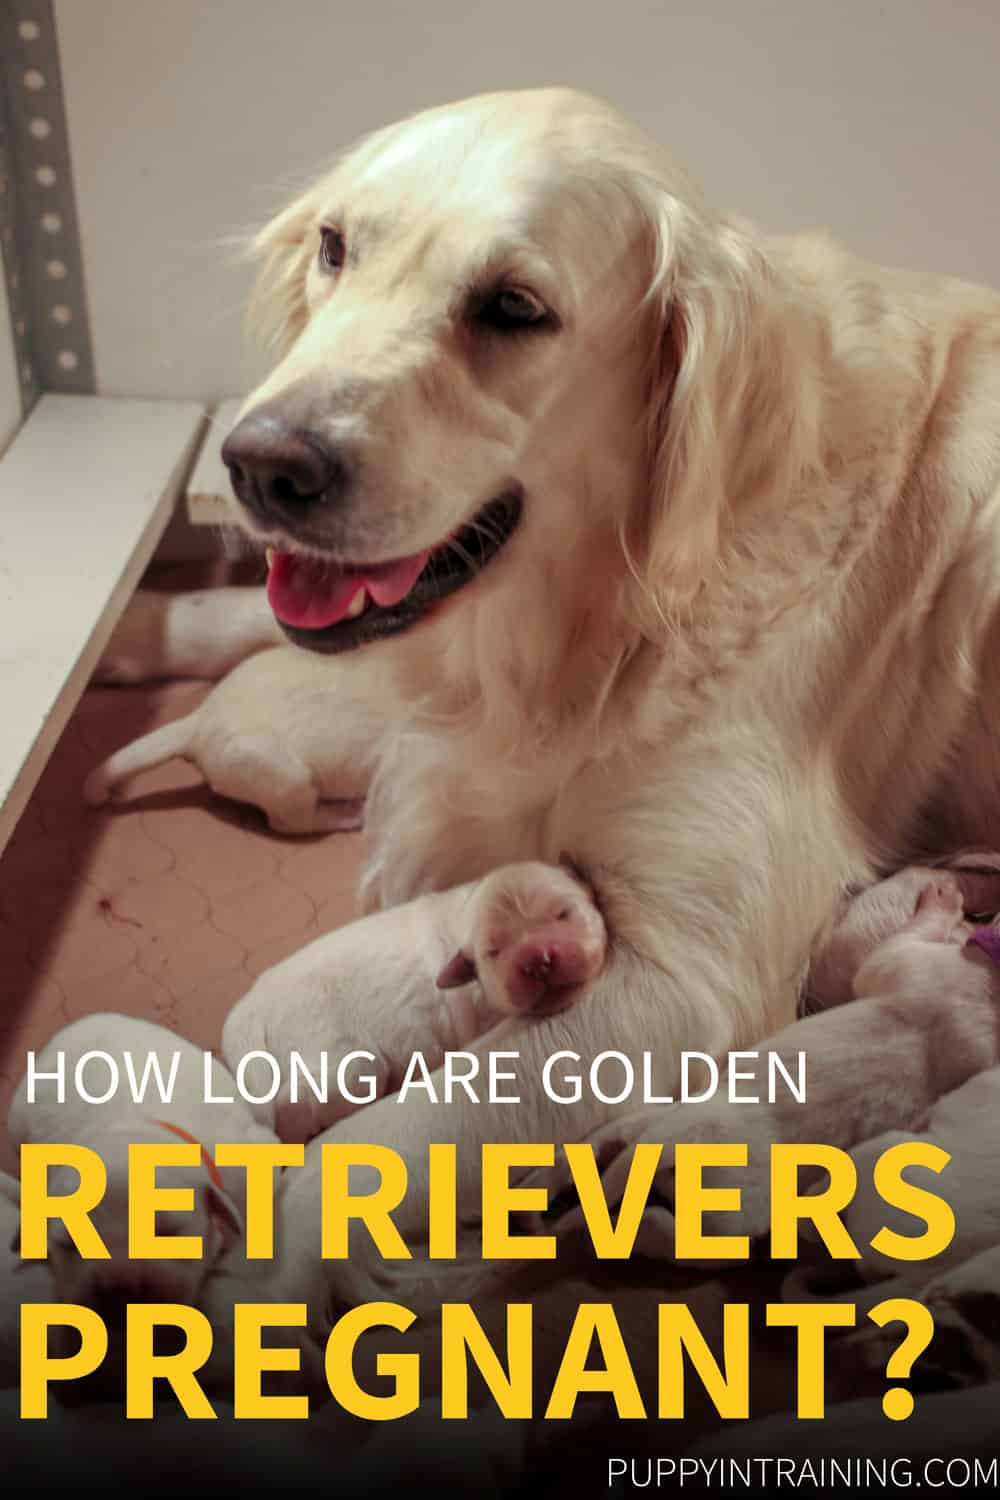 How Long Are Golden Retriever's Pregnant? - Puppy In Training